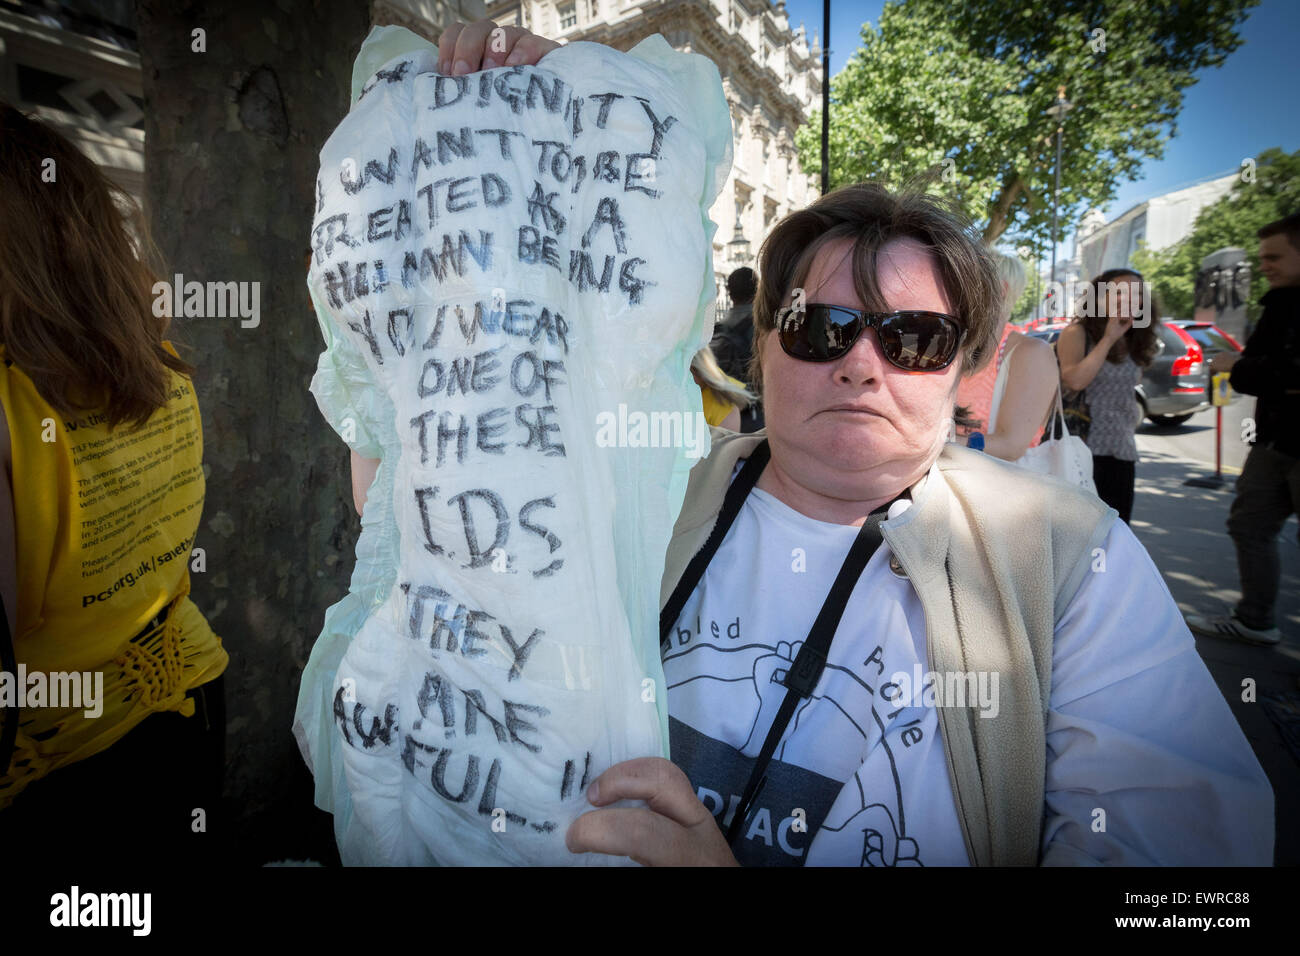 London, UK. 30th June, 2015. Protest against axing of the Independent Living Fund (ILF) by Disabled People Against - Stock Image